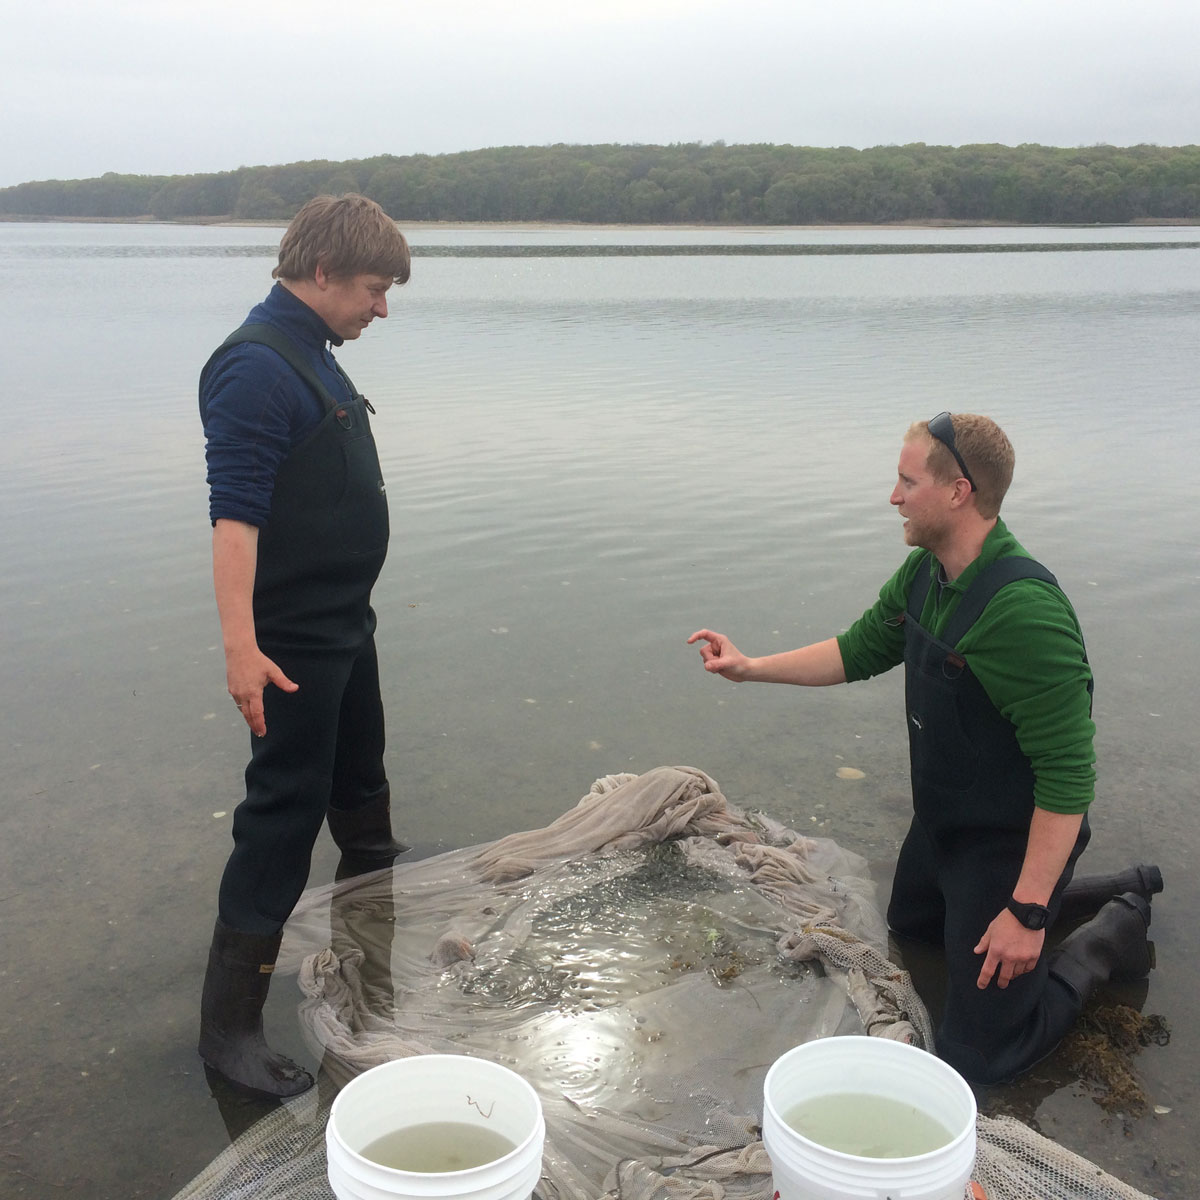 Hannes and Chris in Mumford Cove, discussing how to sort the catch of silversides collected by beach seine